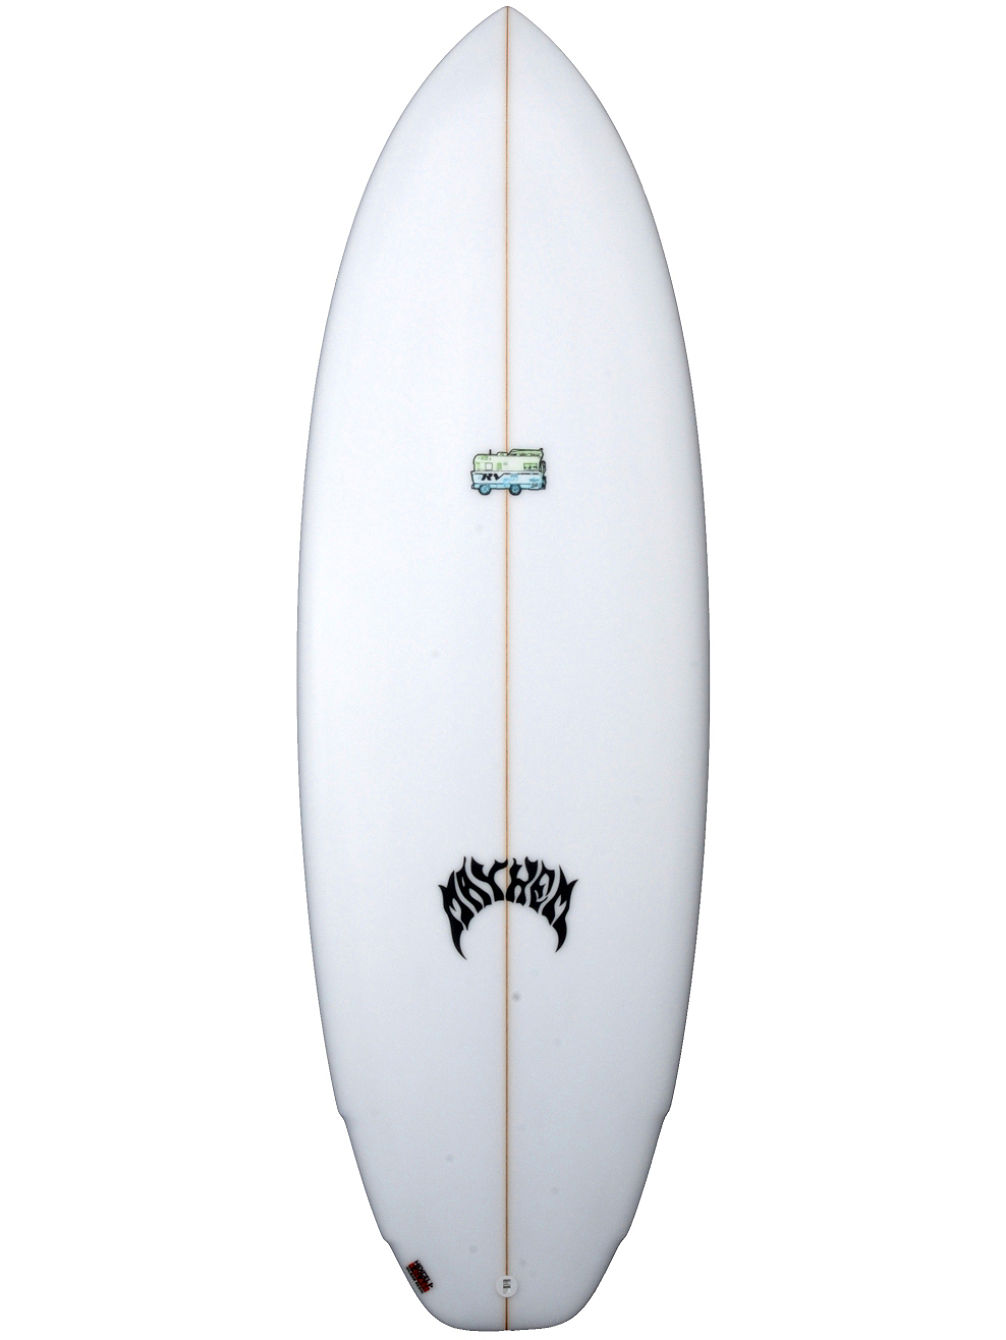 RV 5'7 Surfboard